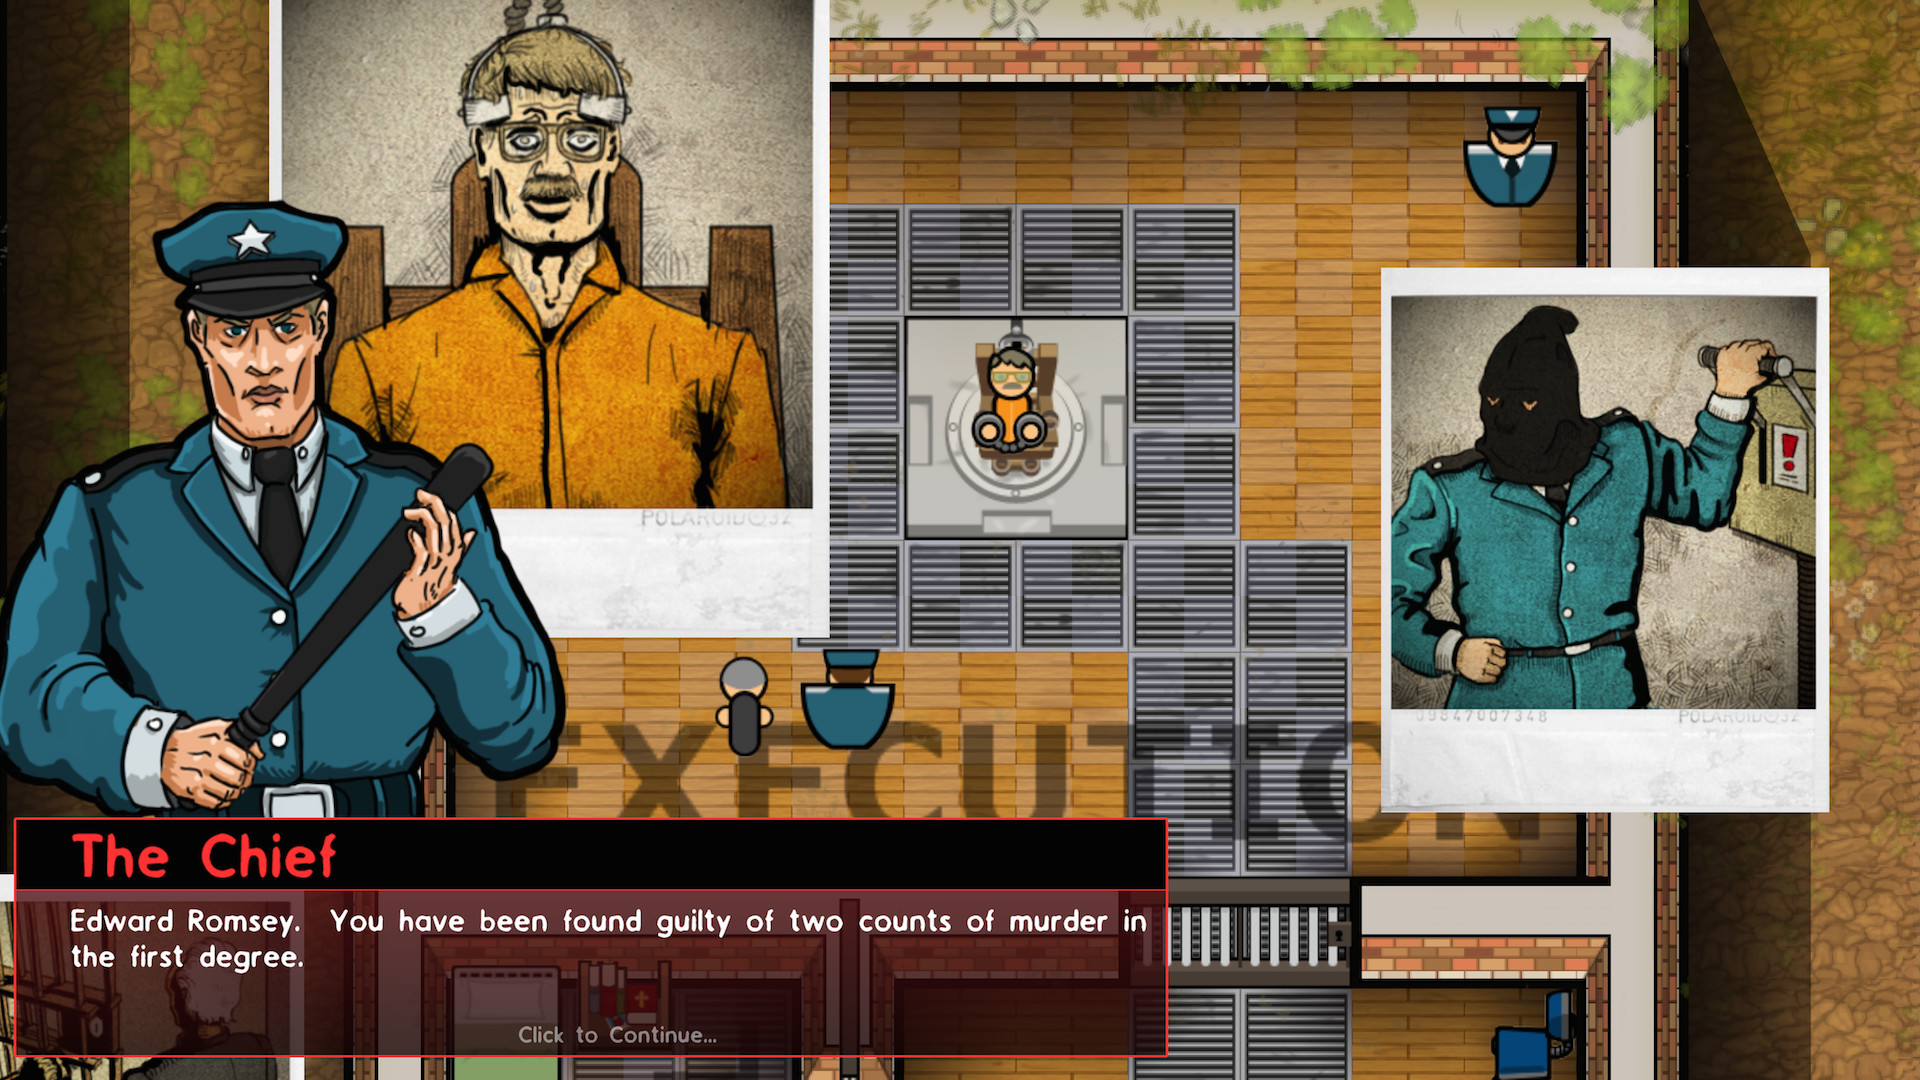 We Asked An Architect About The Game Prison